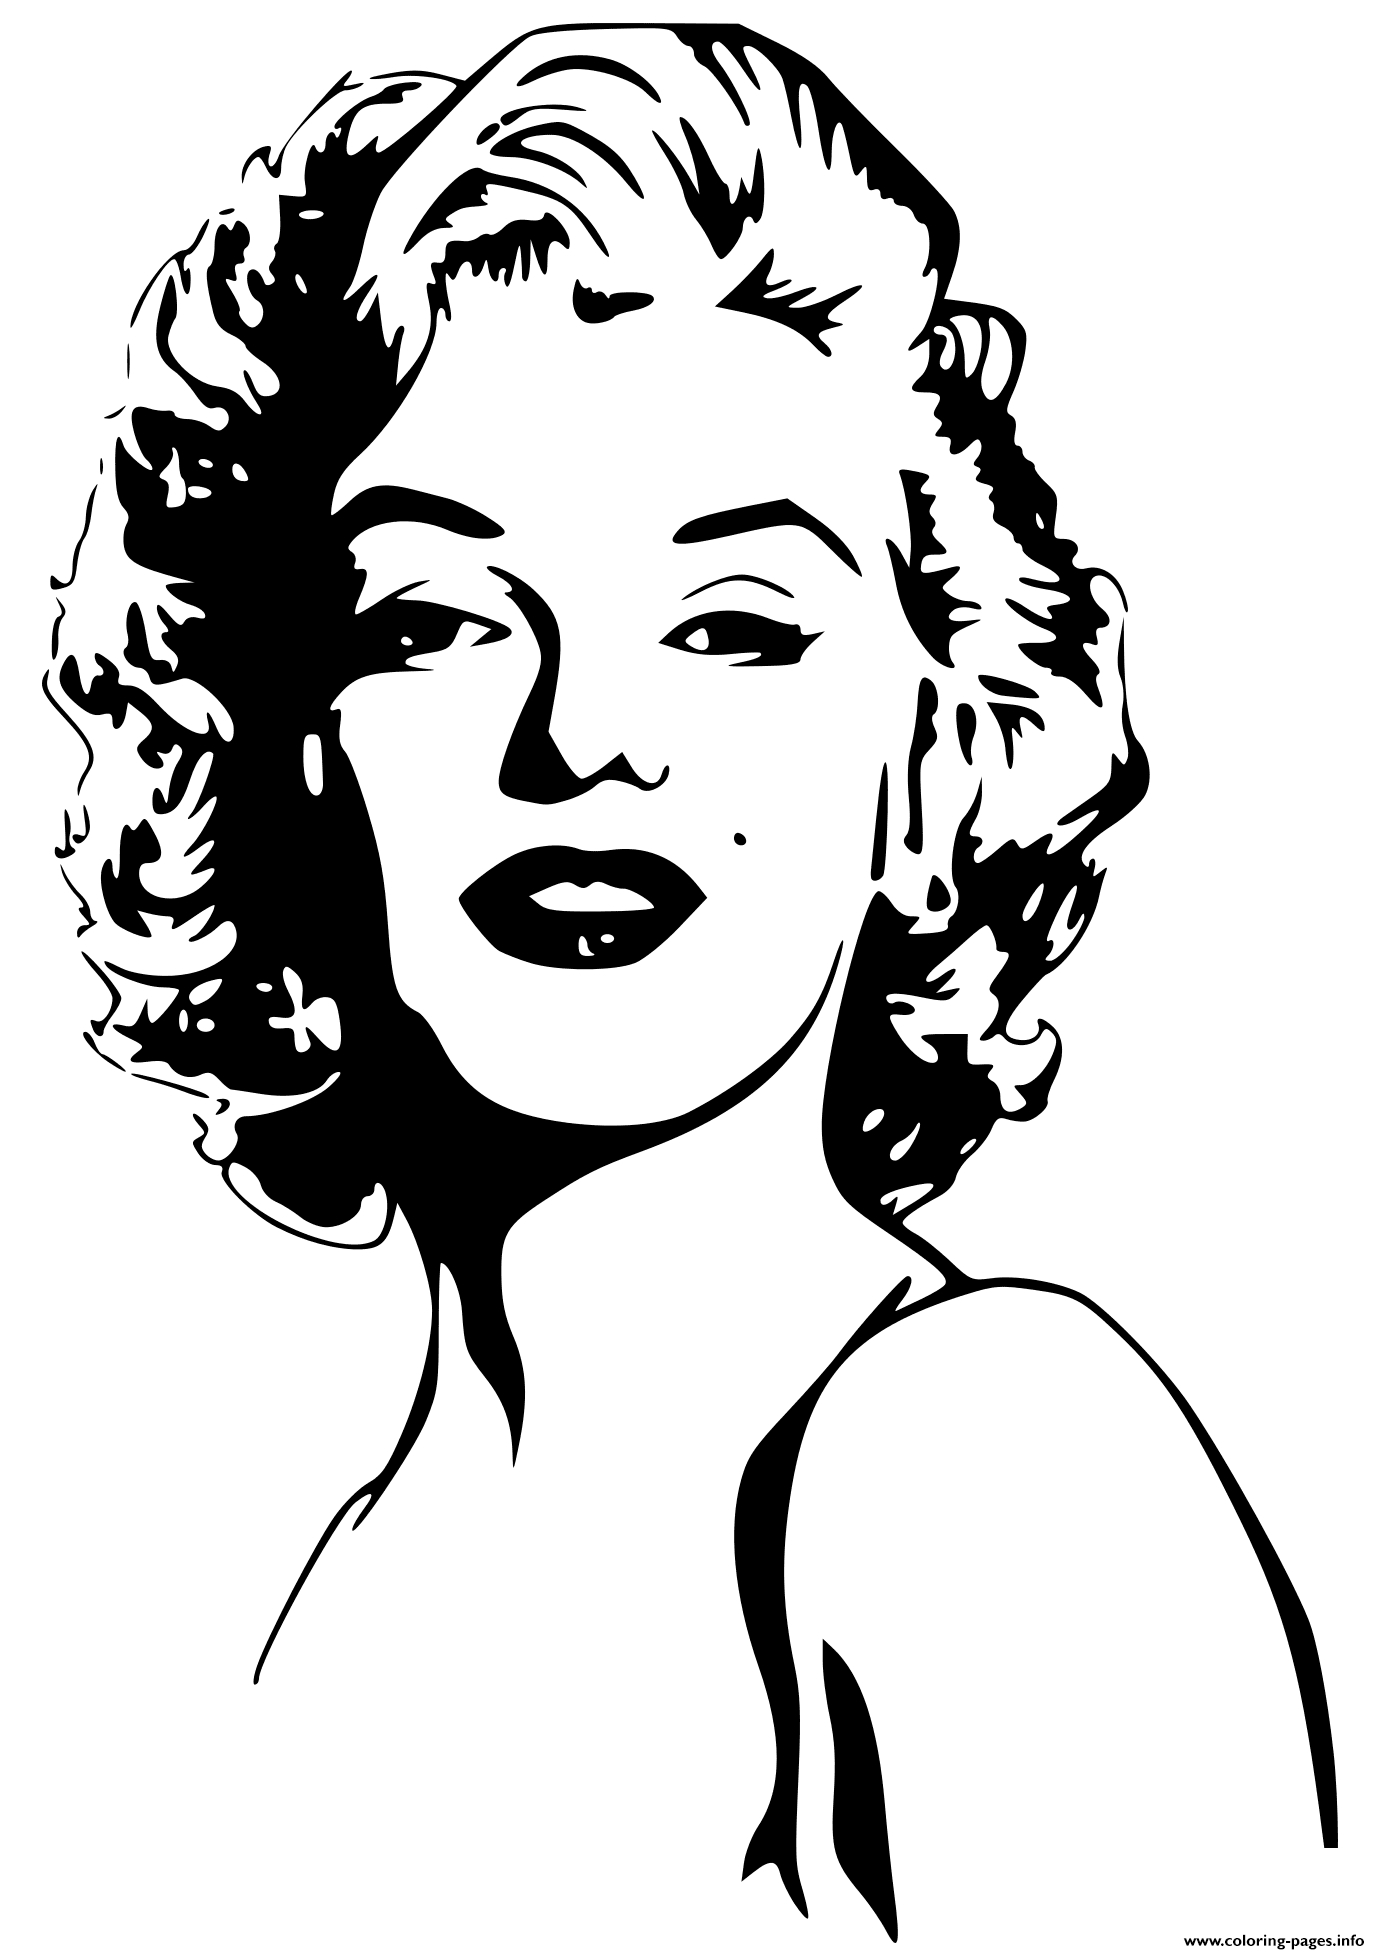 marilyn monroe celebrity coloring pages print download 38 prints - Celebrity Coloring Pages Print